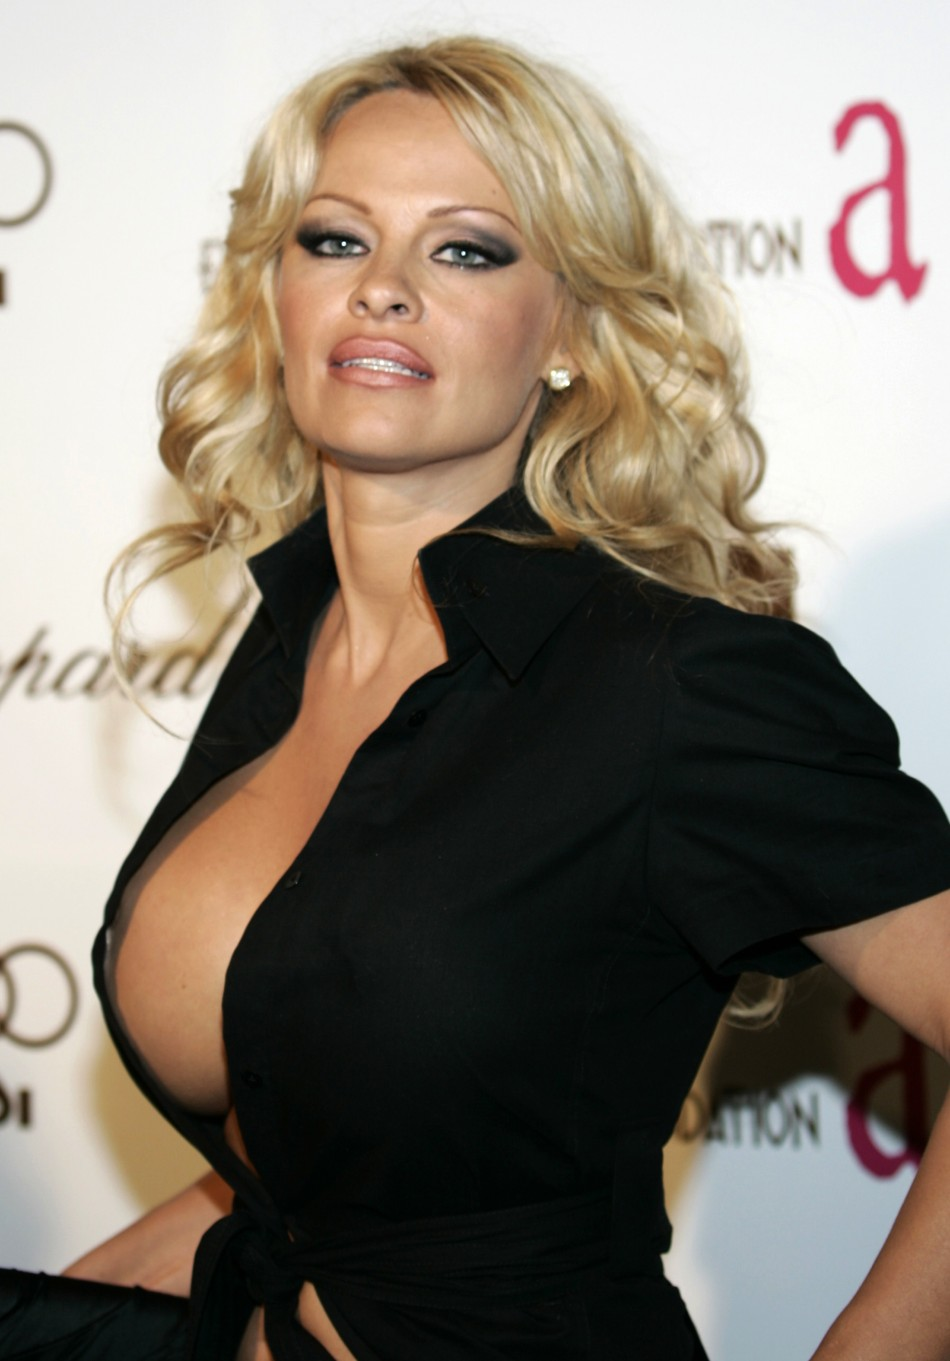 Pamela Anderson hot photos, hot pictures, videos, news ...